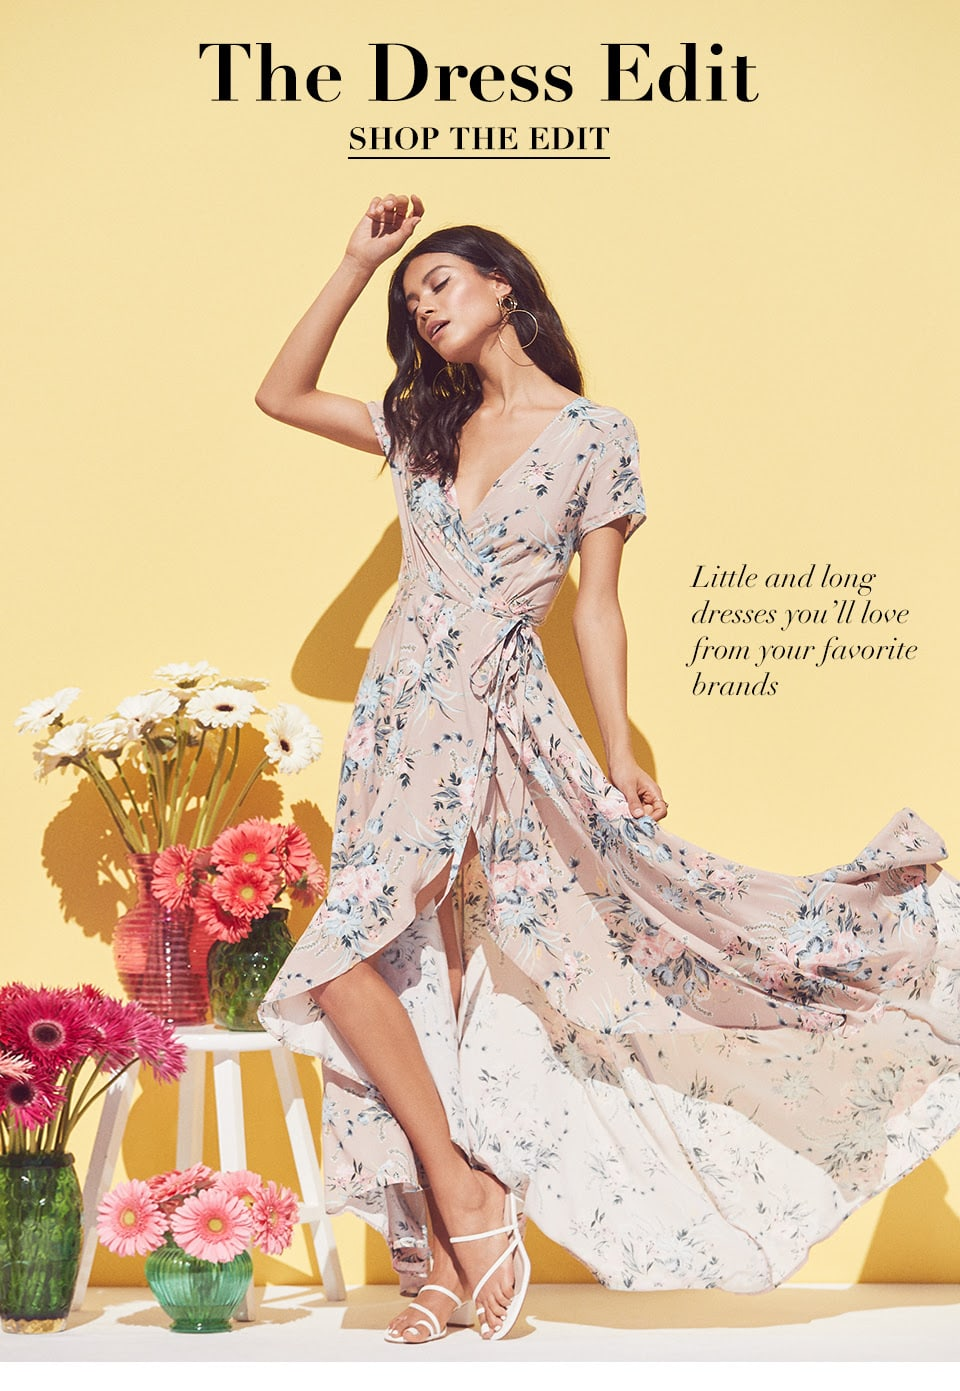 THE DRESS EDIT. LITTLE AND LONG DRESSES YOU'LL LOVE FROM YOUR FAVORITE BRANDS. SHOP THE EDIT